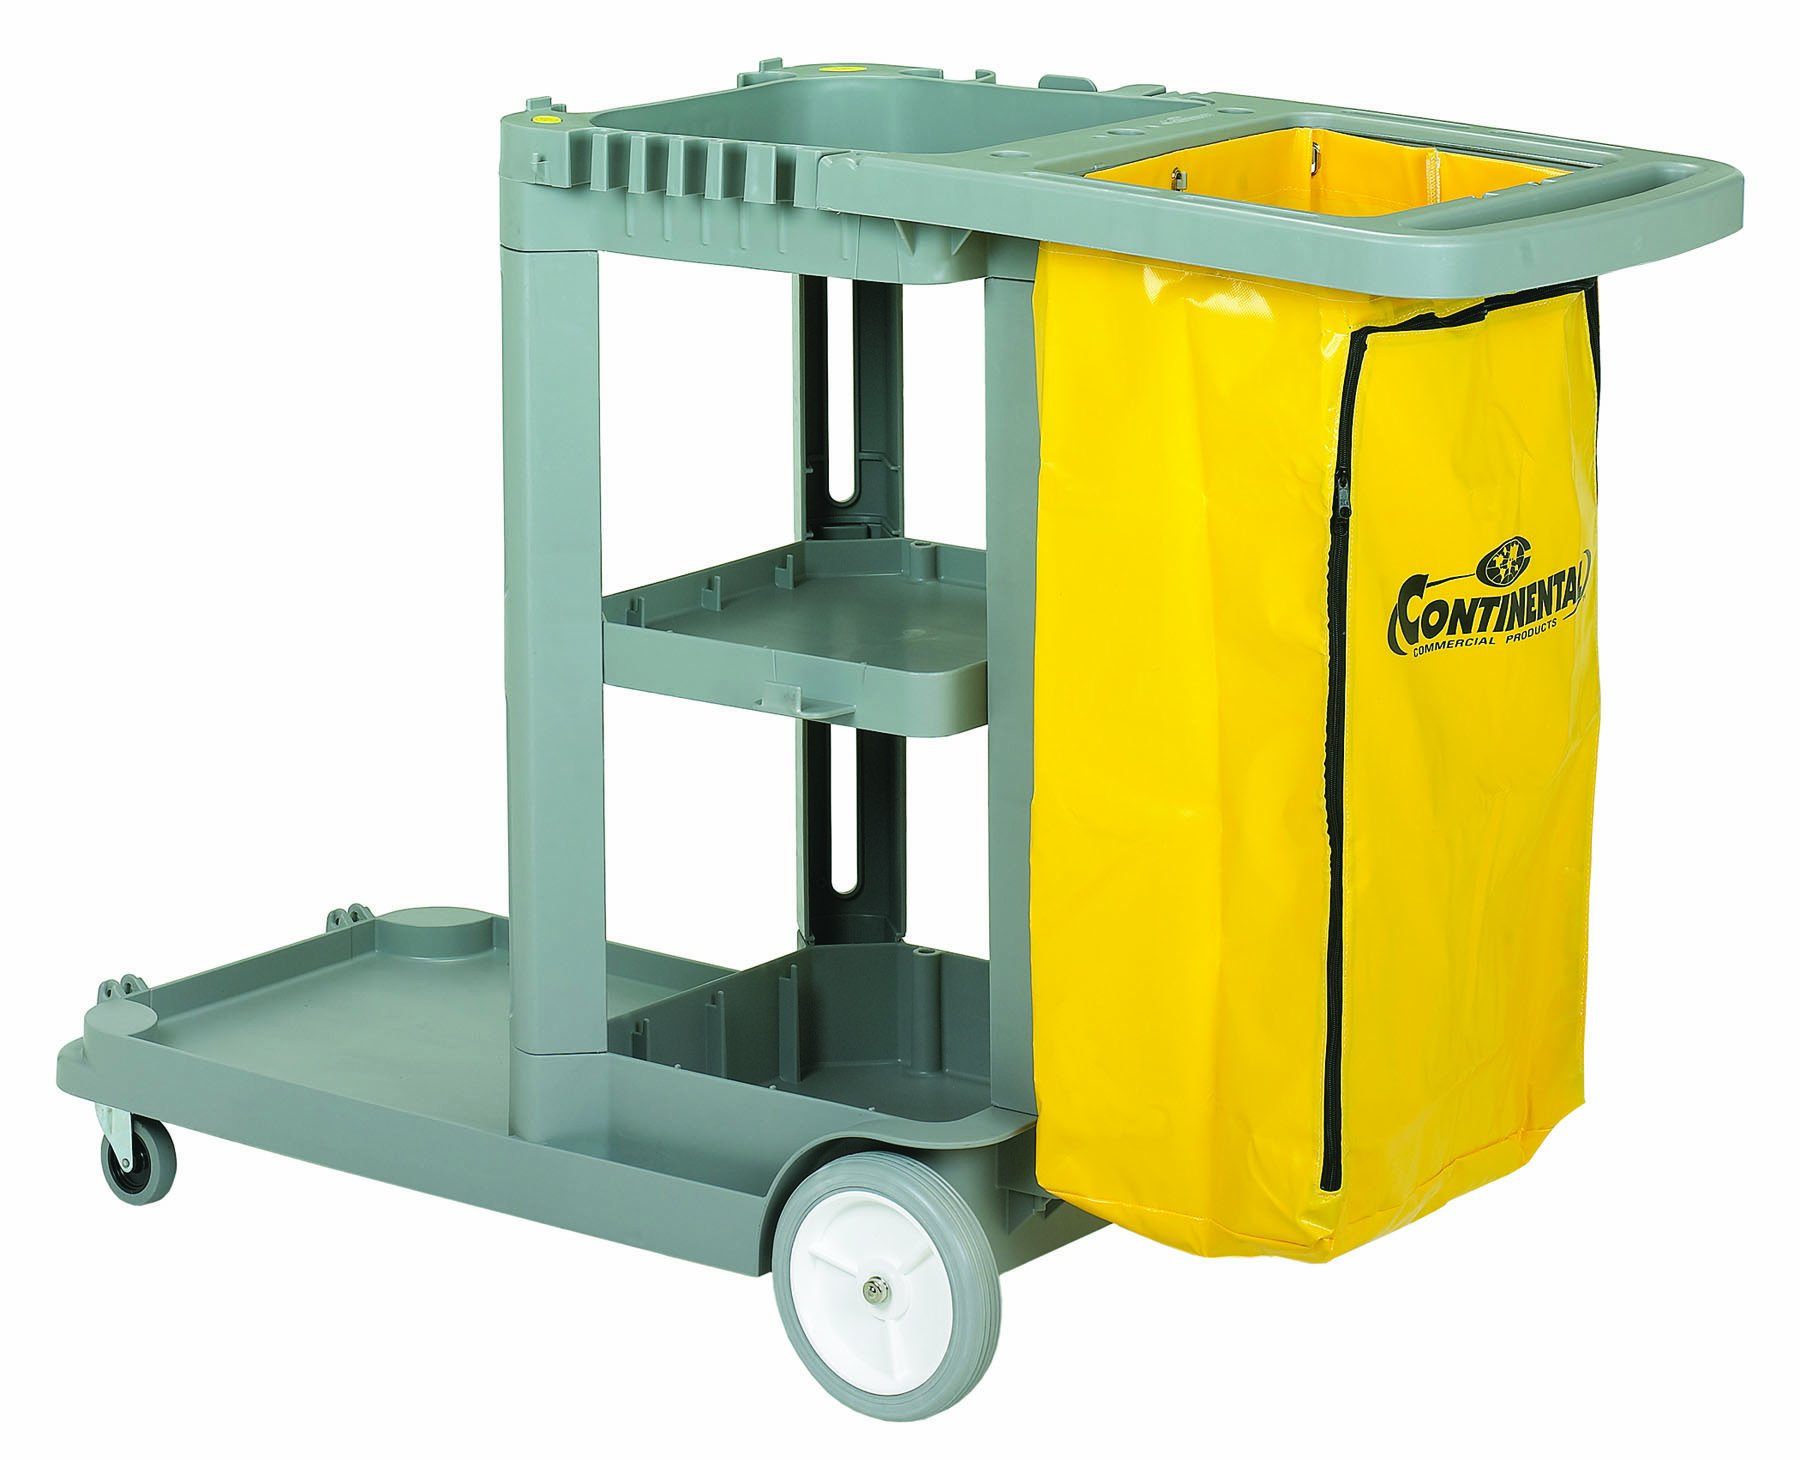 Continental 184GY, Grey Standard Janitorial Cart (Case of 1) by Continental